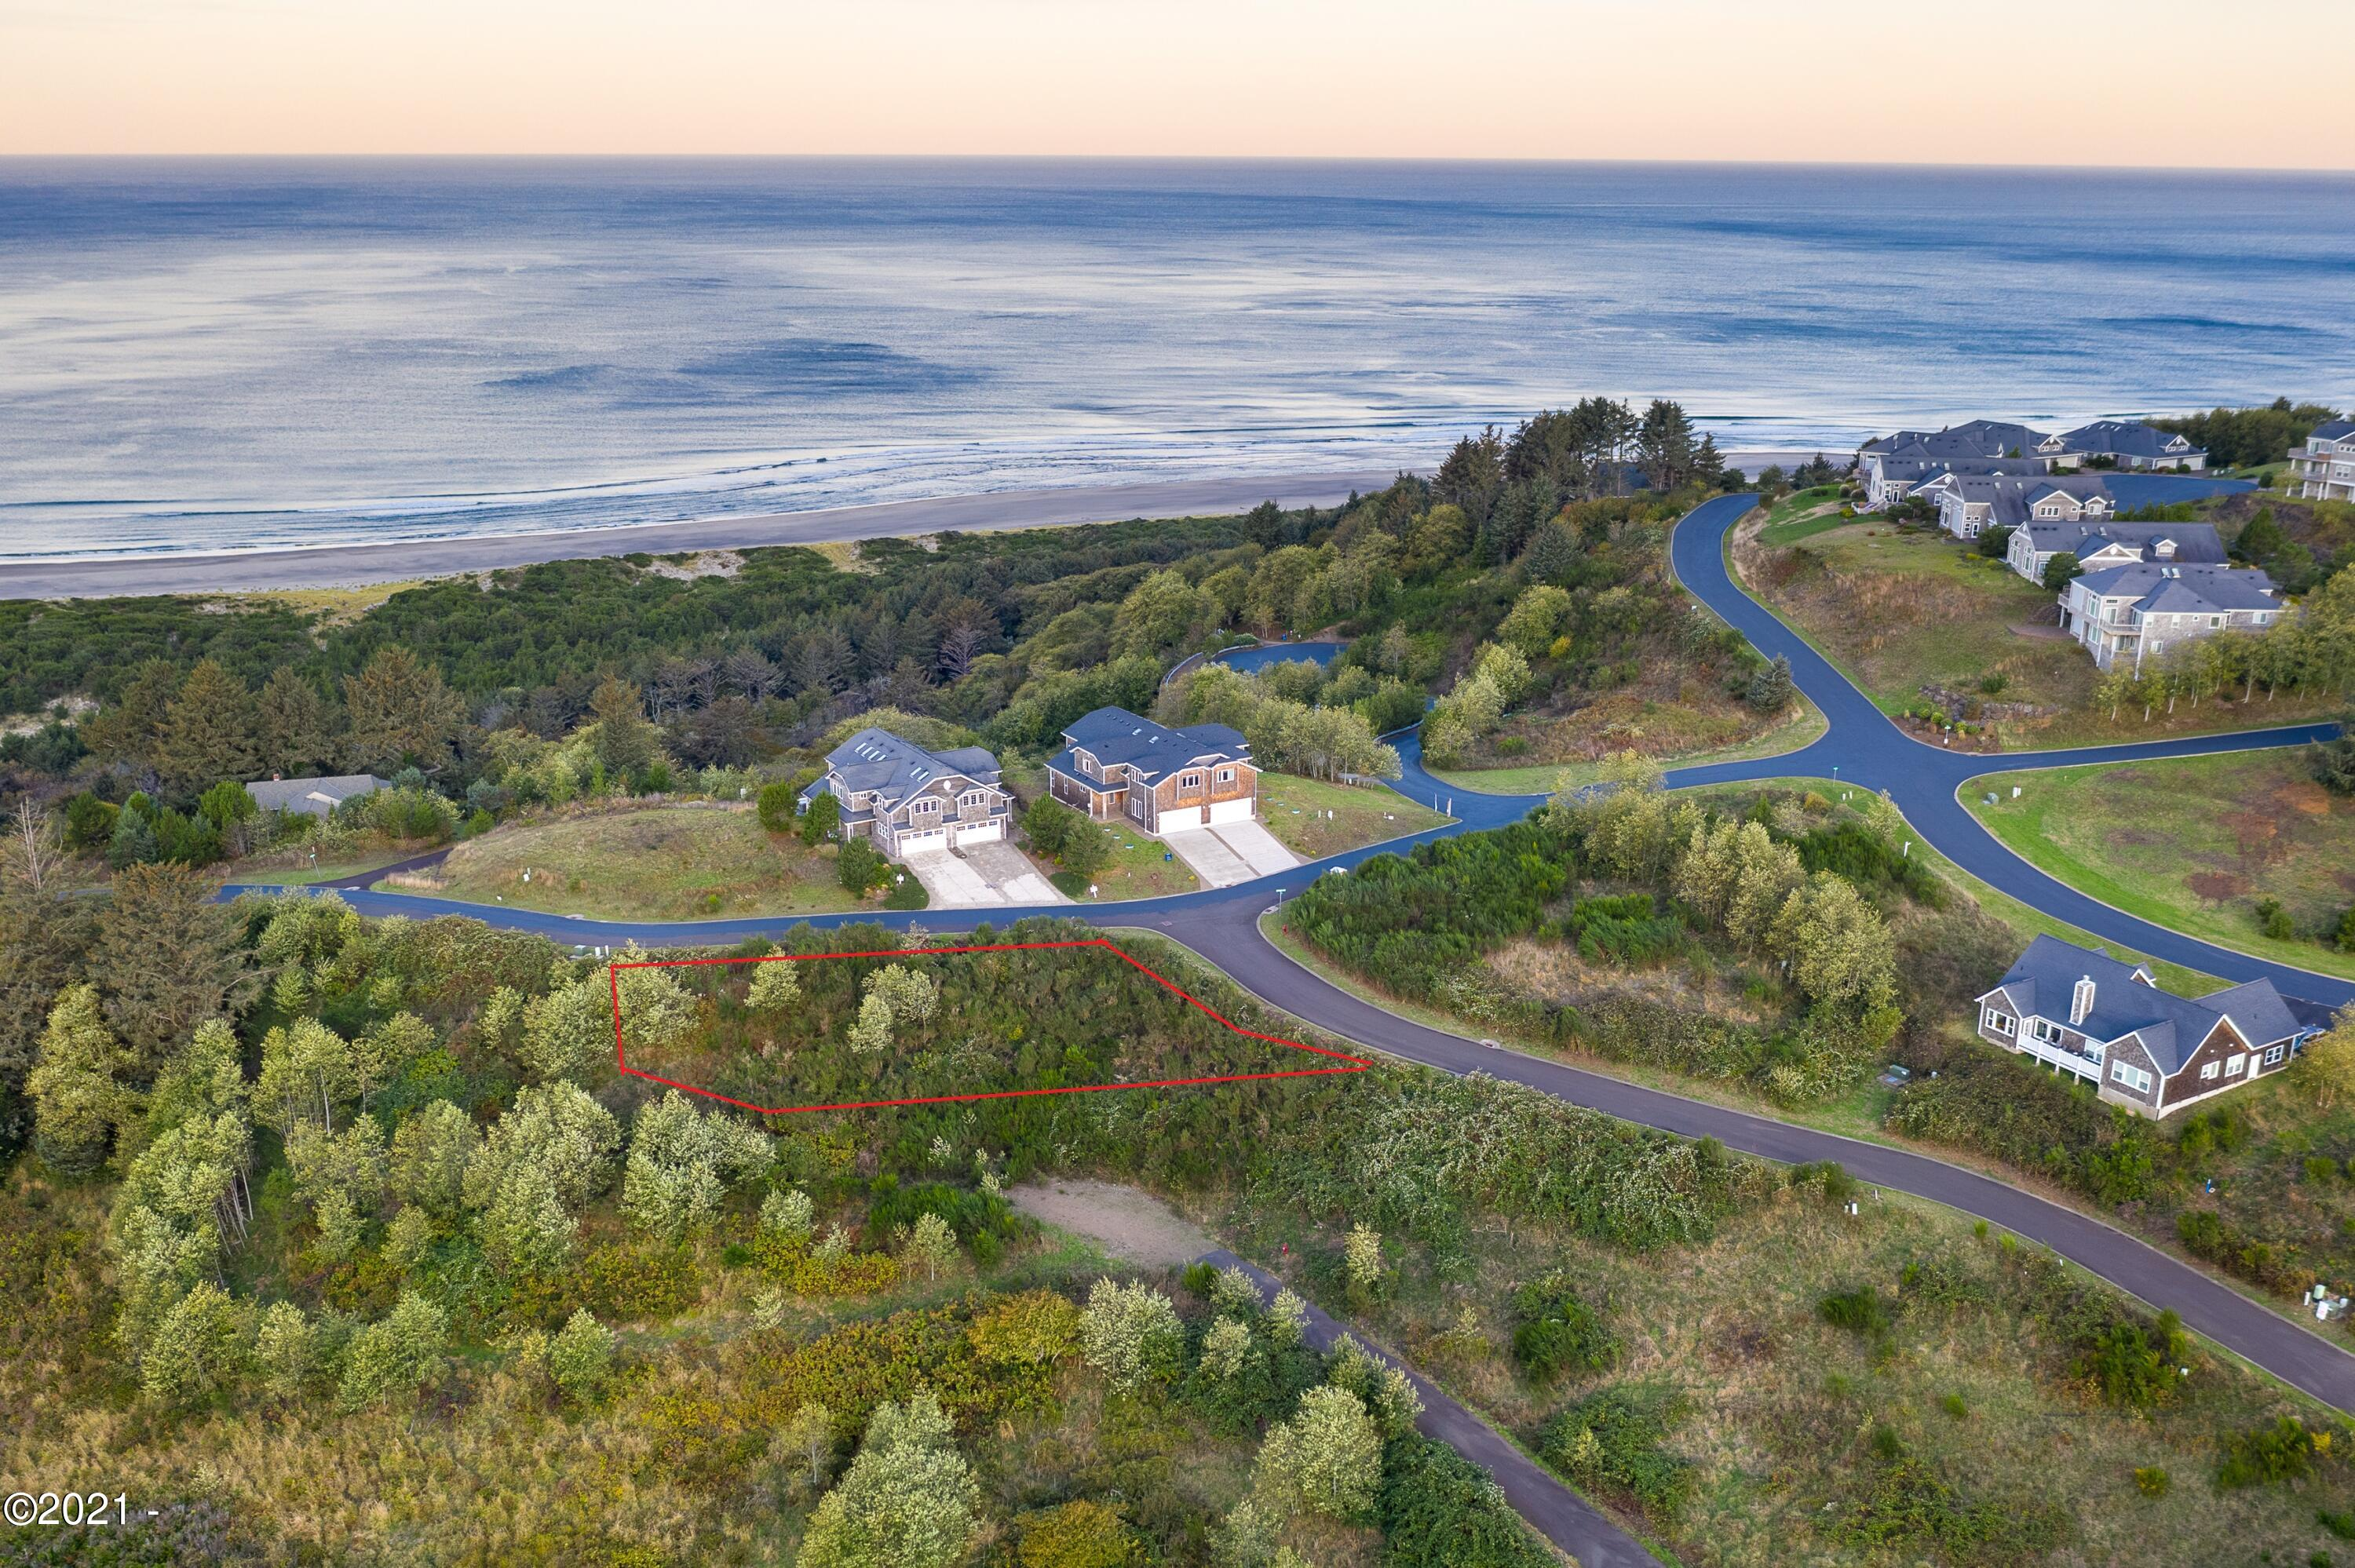 LOT 13-A Heron View Dr, Neskowin, OR 97149 - SahhaliSouth-10-Print